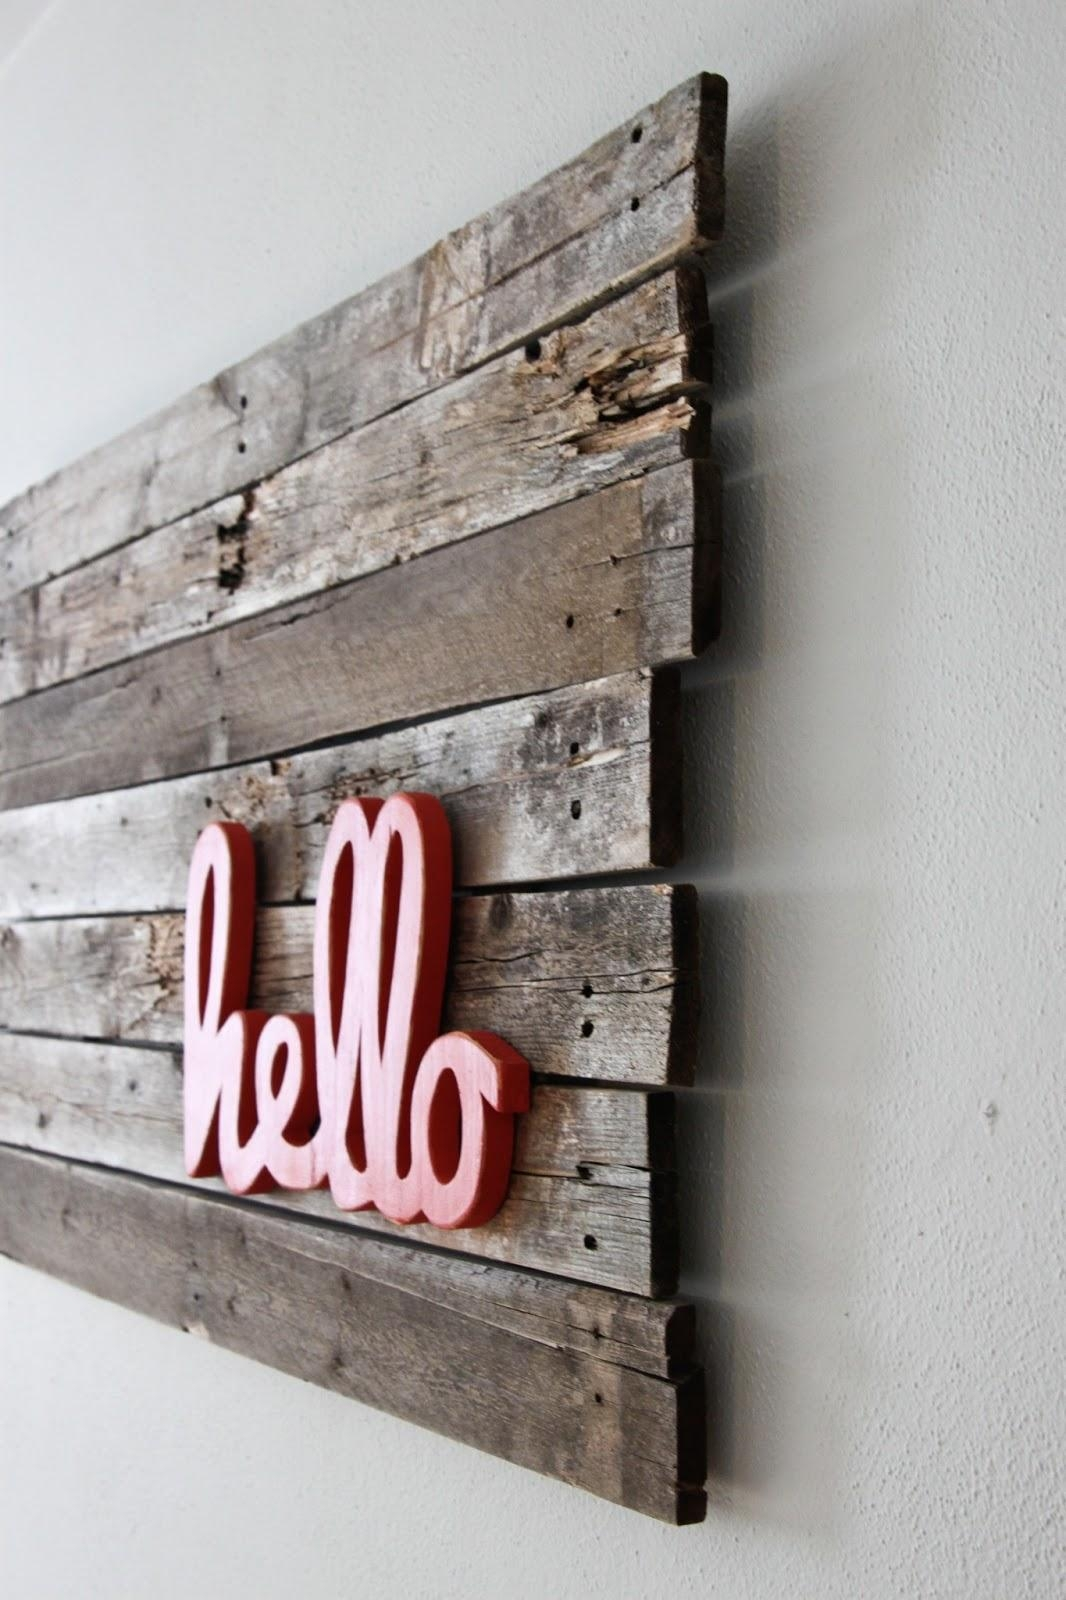 Wooden Word Decorations For Walls – Home Ideas Designs In Wooden Word Art For Walls (View 3 of 20)